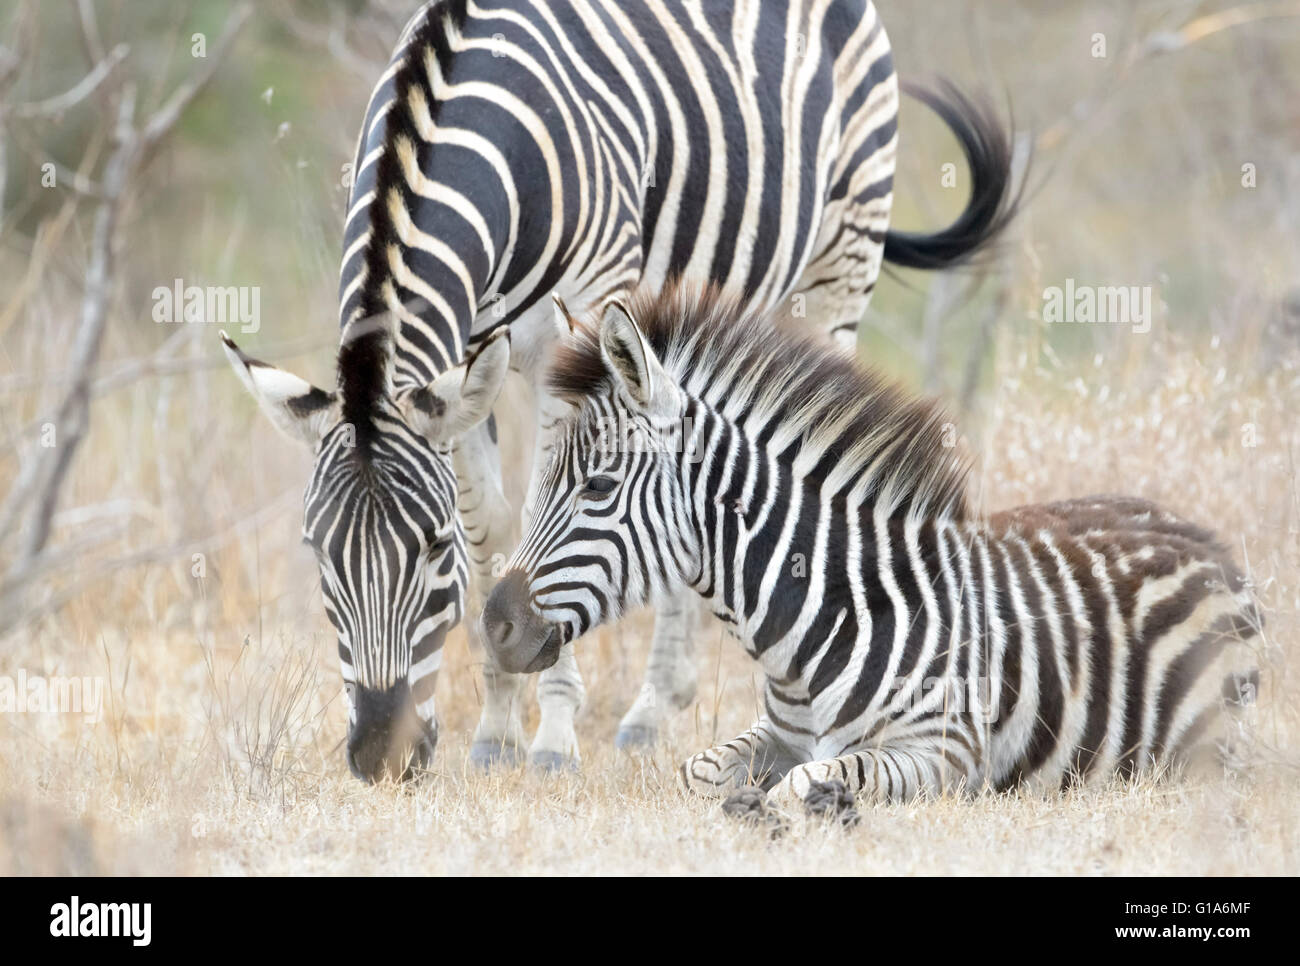 Plains zebra (Equus quagga) juvenile lying down with mother, Kruger National Park, South Africa - Stock Image